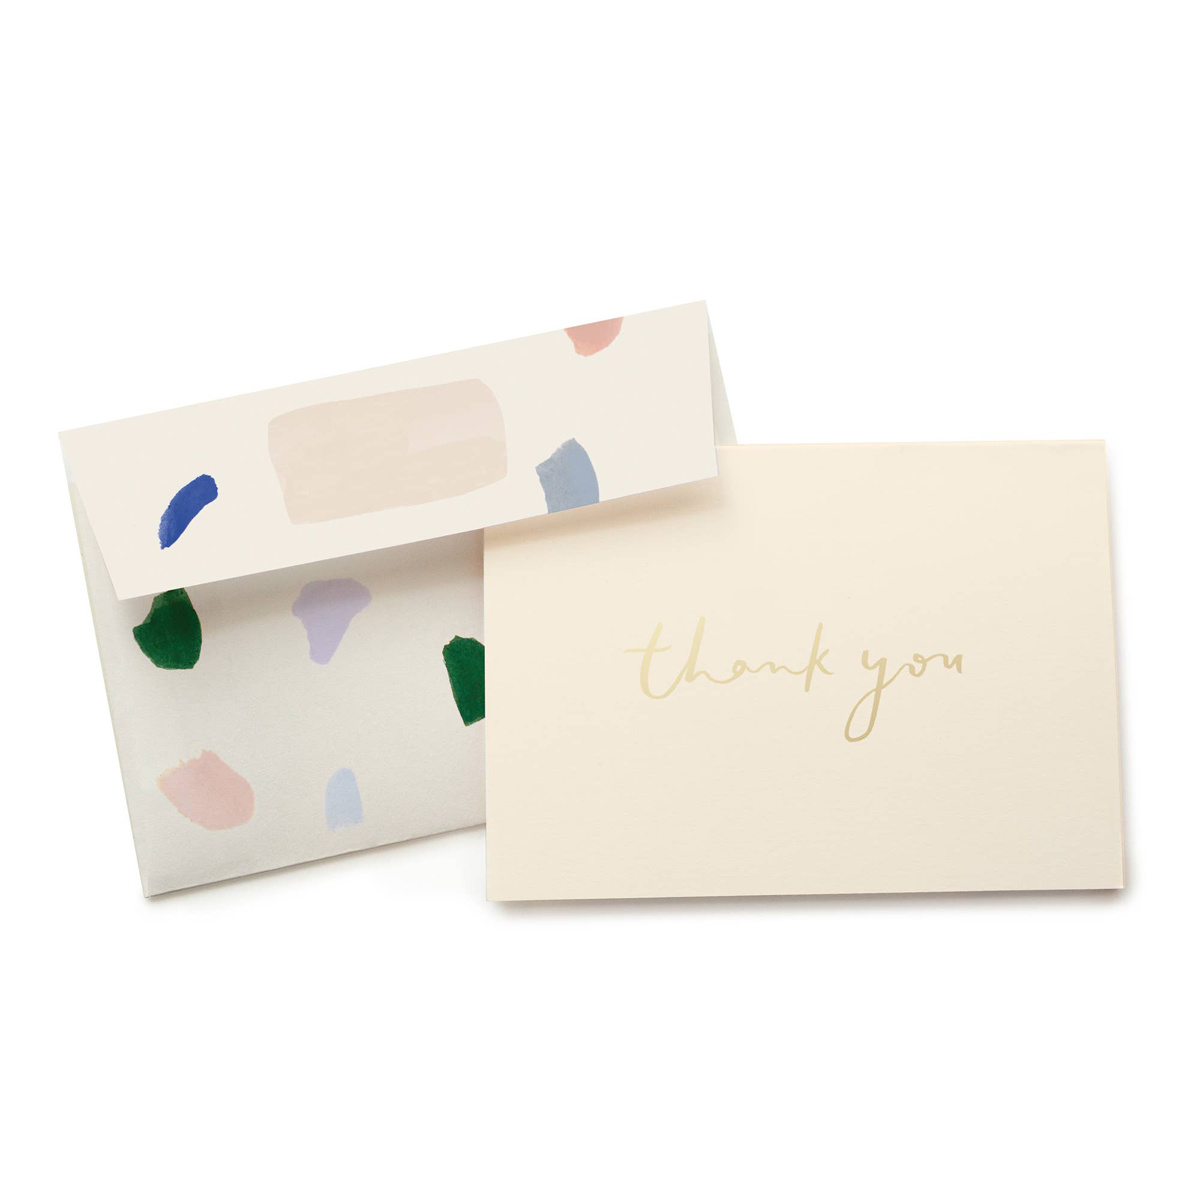 Our Heiday - OH Strokes Thank You, Set of 6